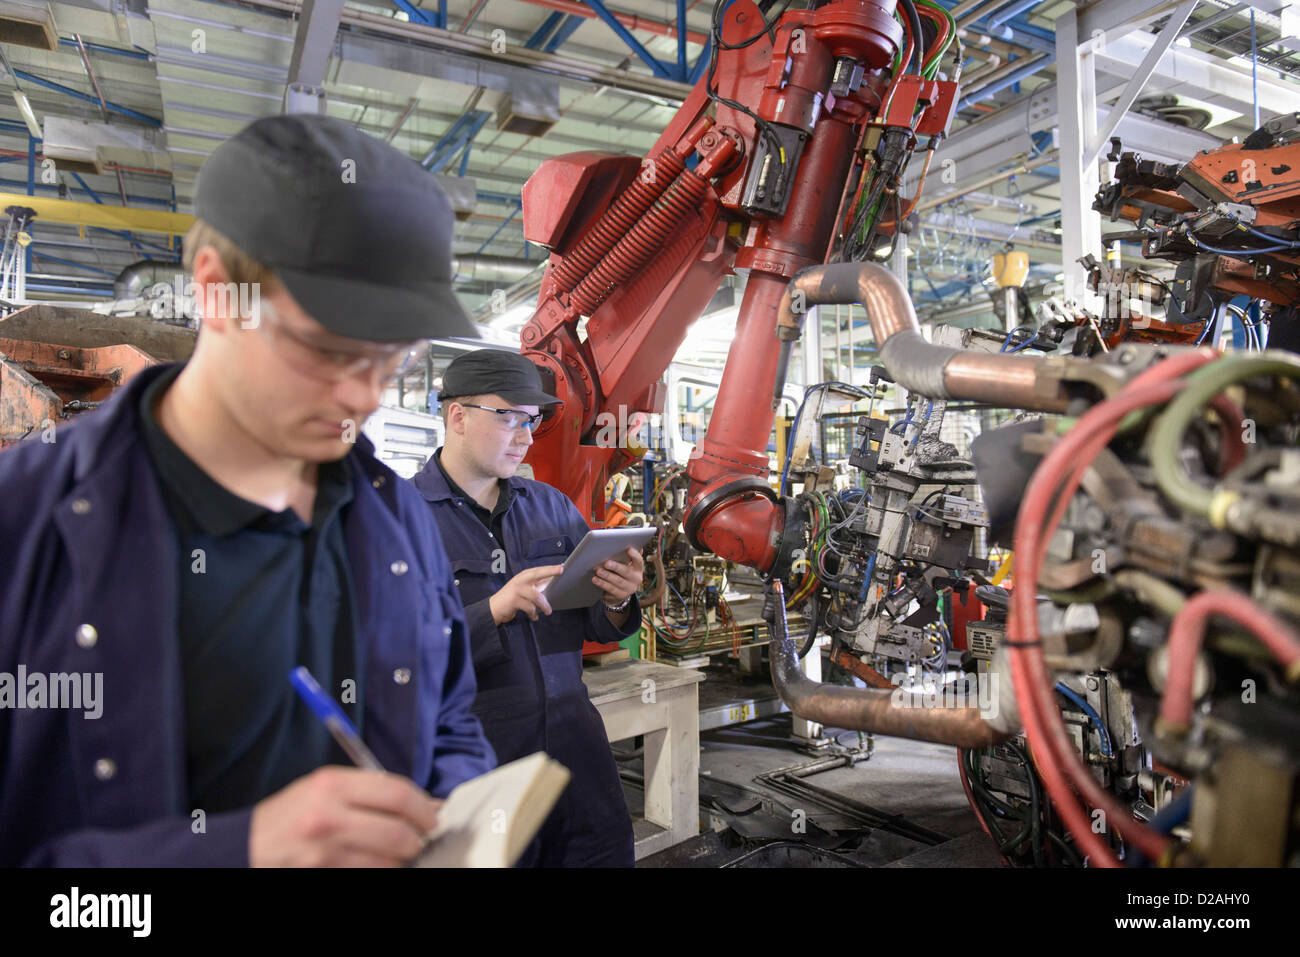 Apprentices with robots in car factory - Stock Image